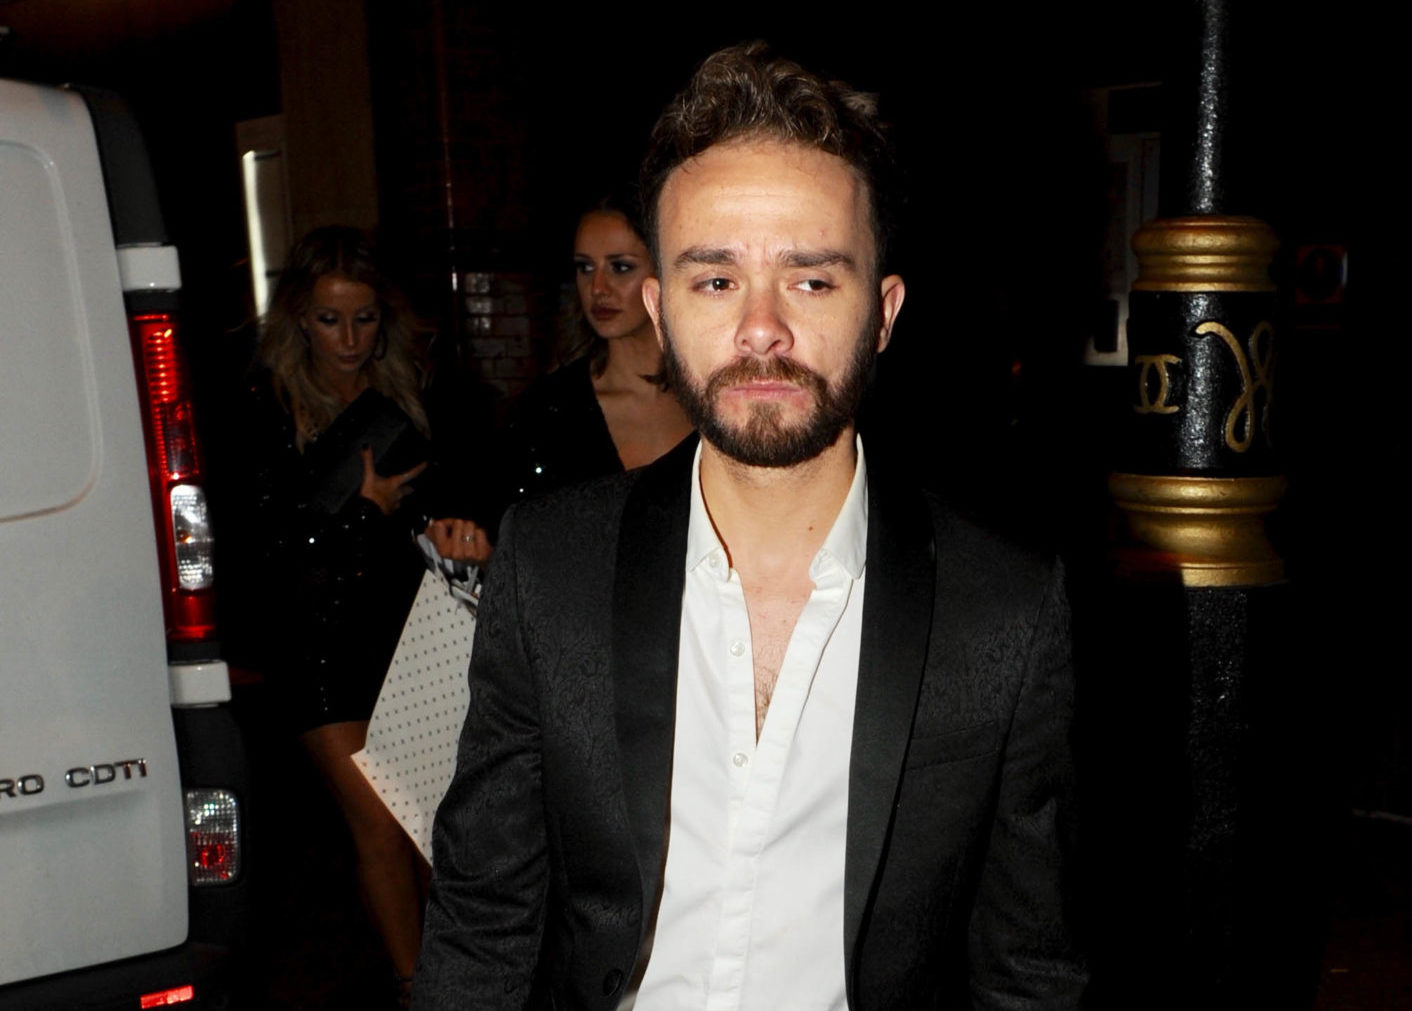 Coronation Street's Jack P Shepherd says he'd leave if the good storylines dry up